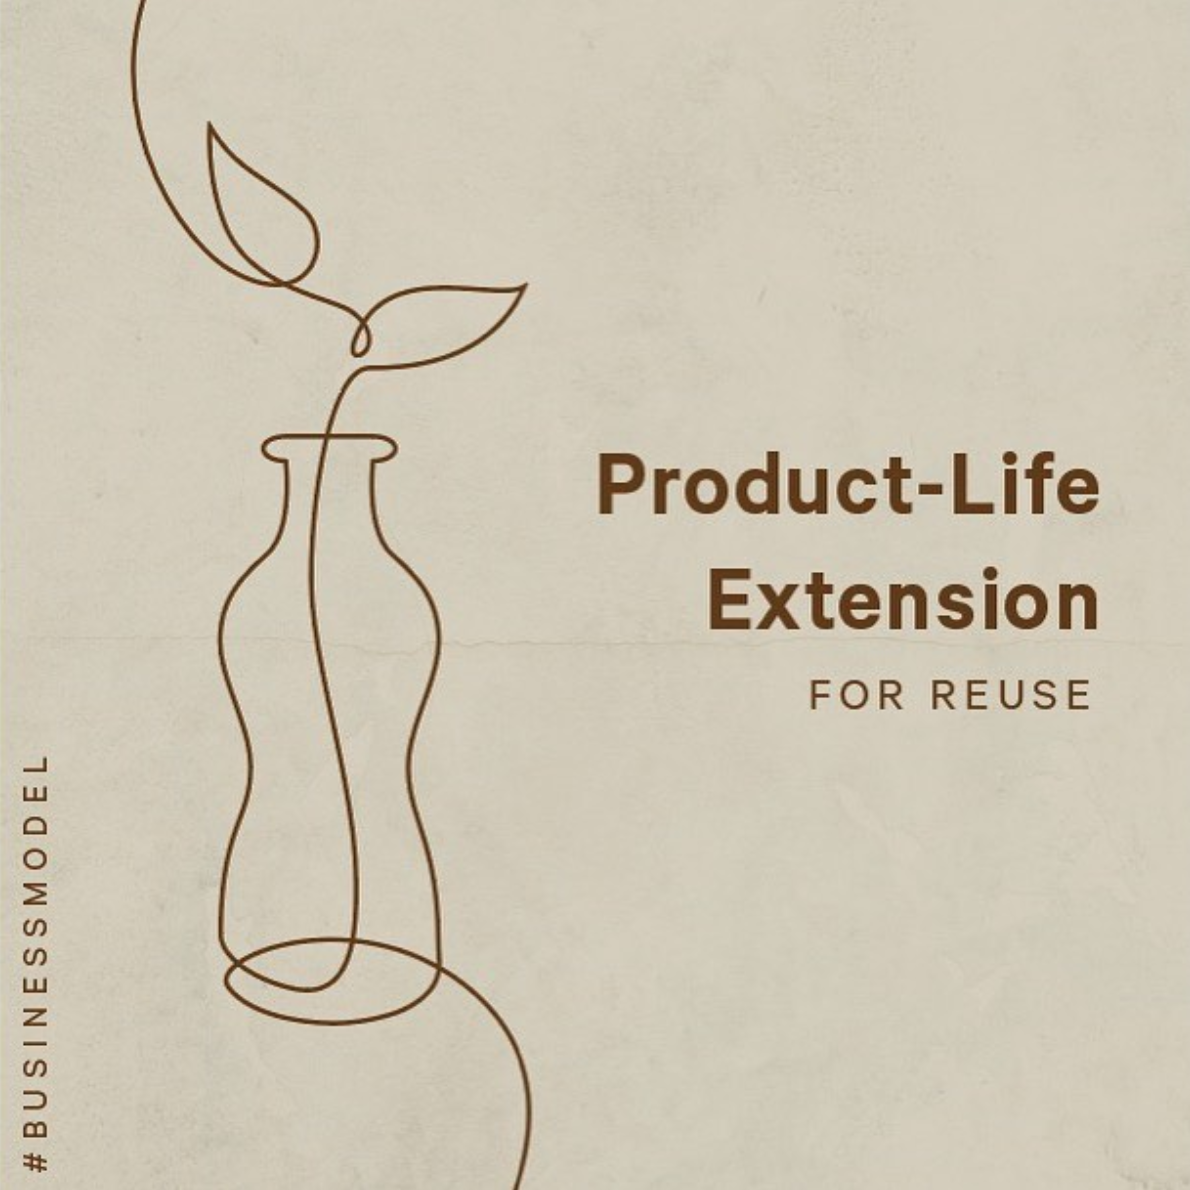 Product-Life Extension - People often fall into the trap of buying new things instead of reusing or repairing them. This model gives these consumers an opportunity to repair their products for multiple uses. Remanufacturers and refurbishers of second-hand items, both of which go against the harmful trend of planned obsolescence, fall under this category. PR Newswire estimates that global automotive parts remanufacturing alone amounts to a $33 billion industry.